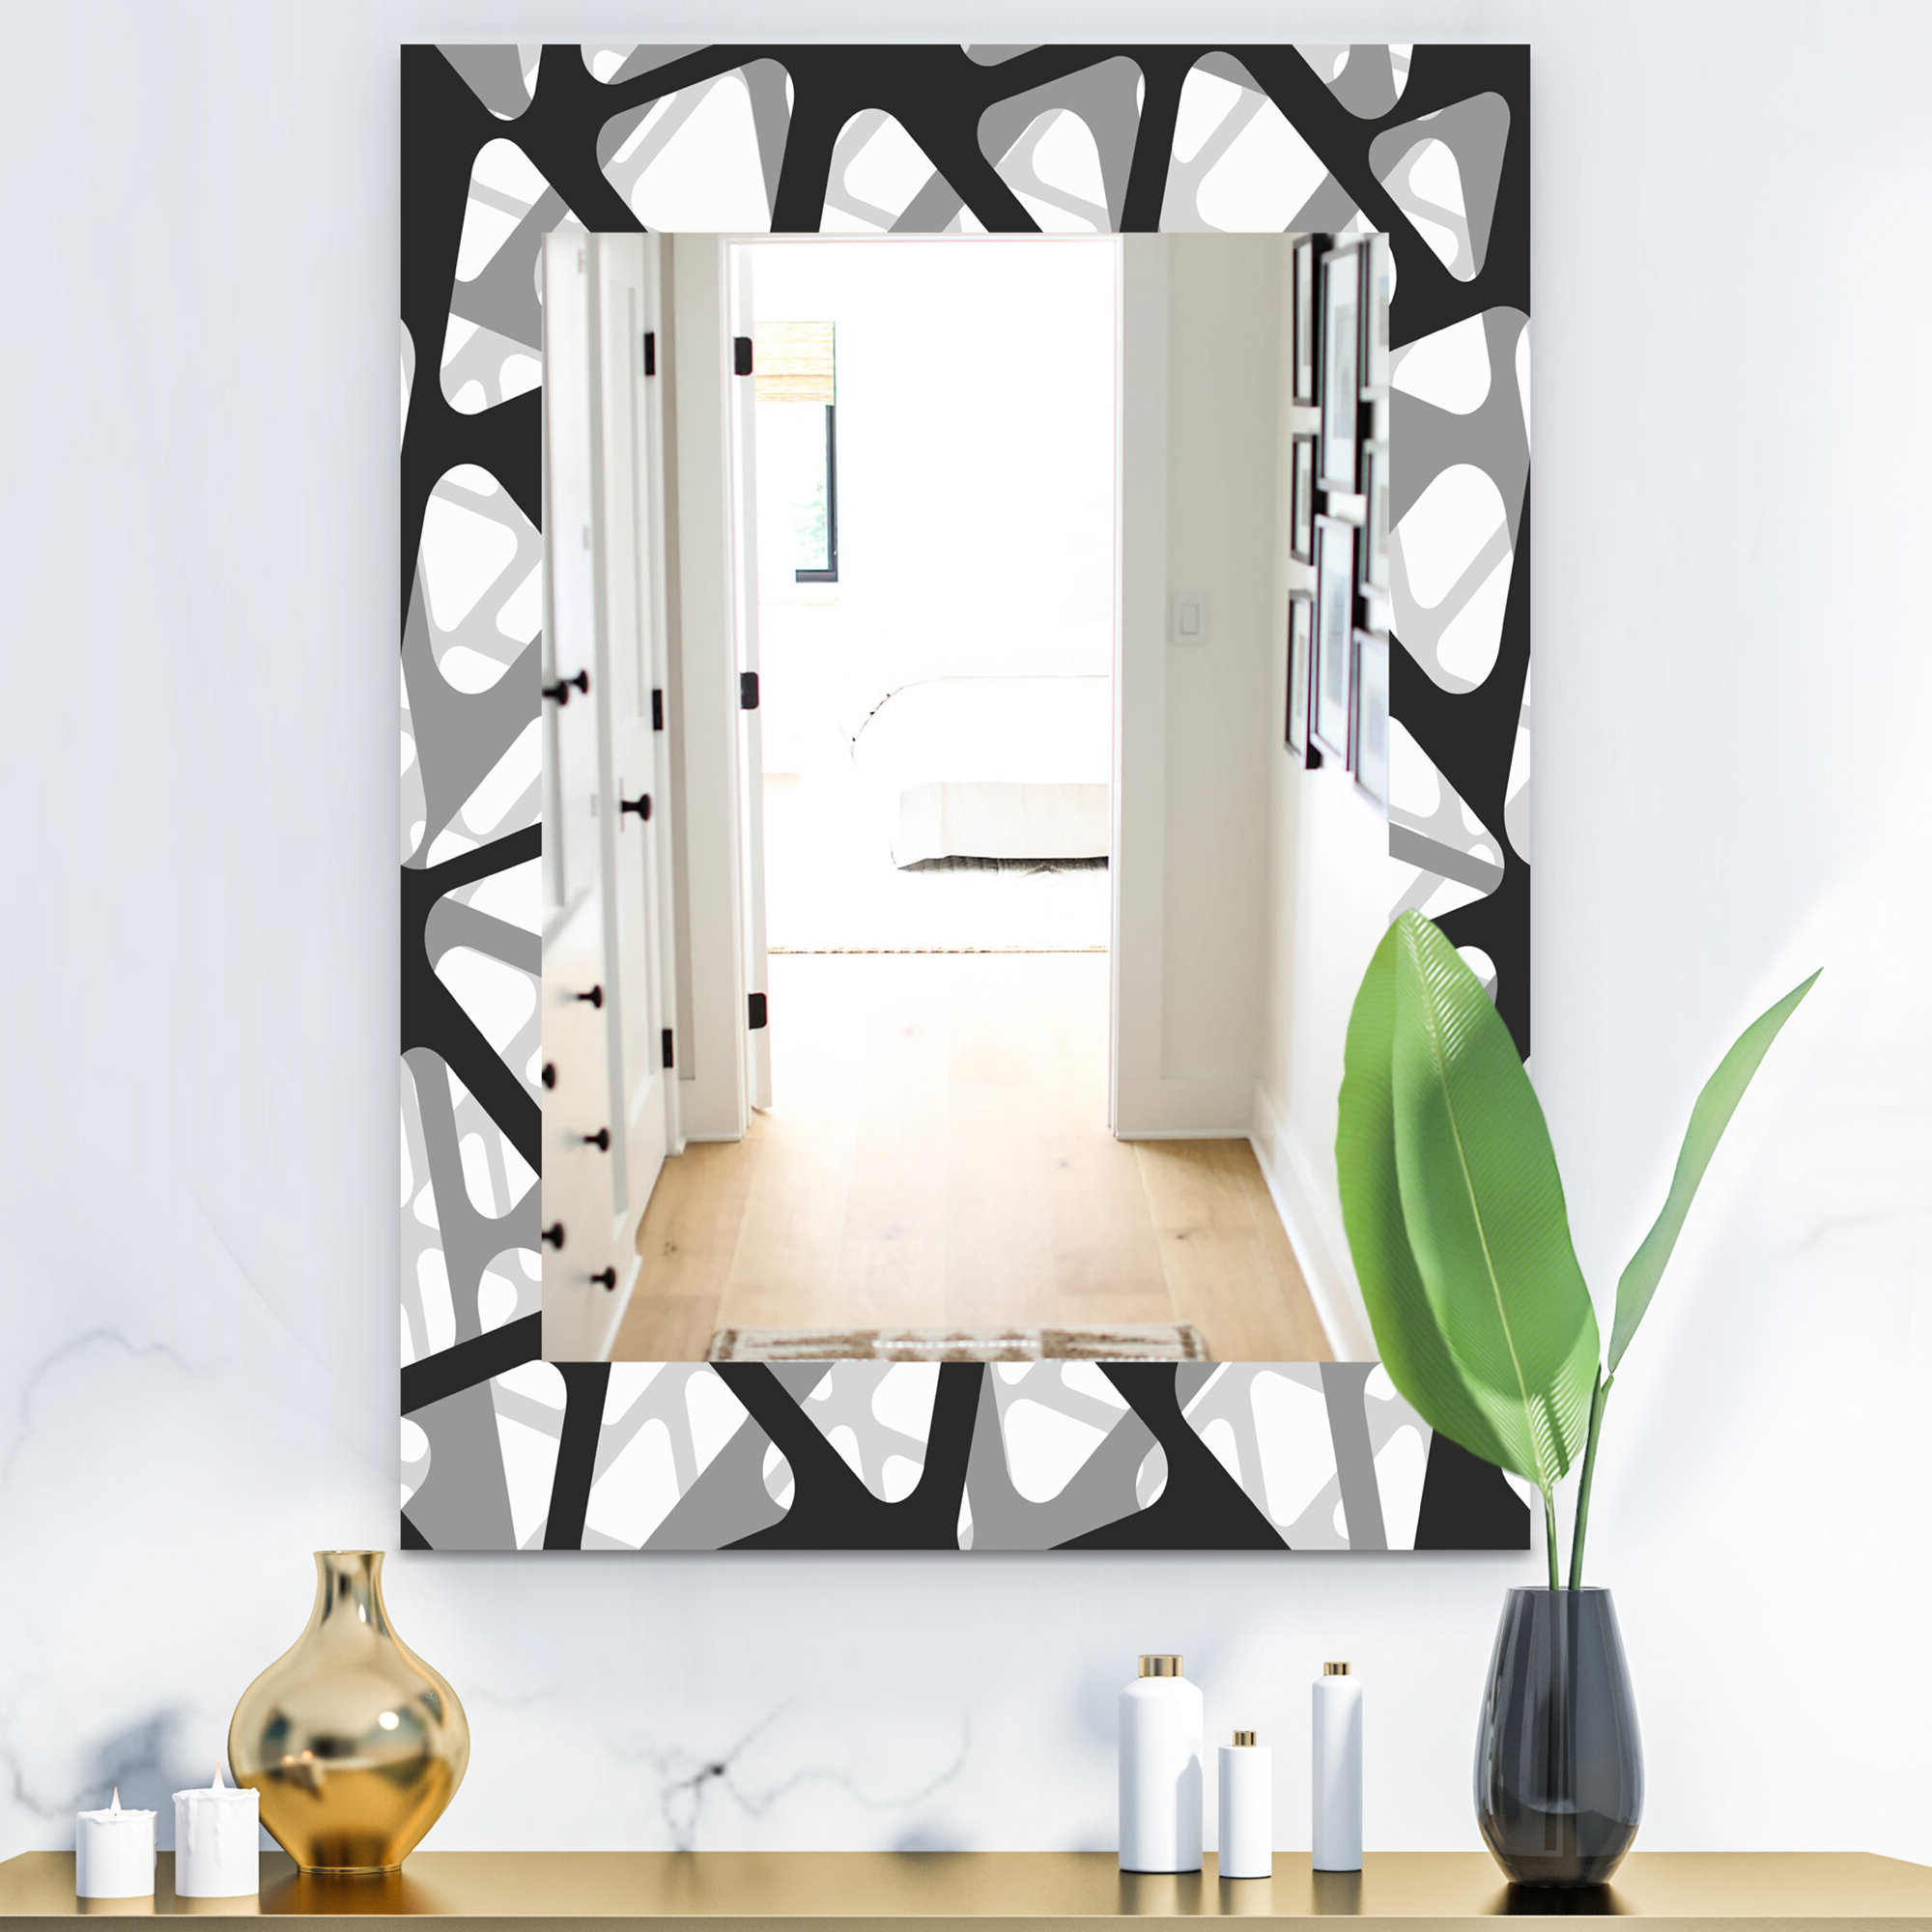 Famous Mid Century Modern Frameless Wall Mirror Pertaining To Mid Century Modern Wall Mirrors (View 3 of 20)